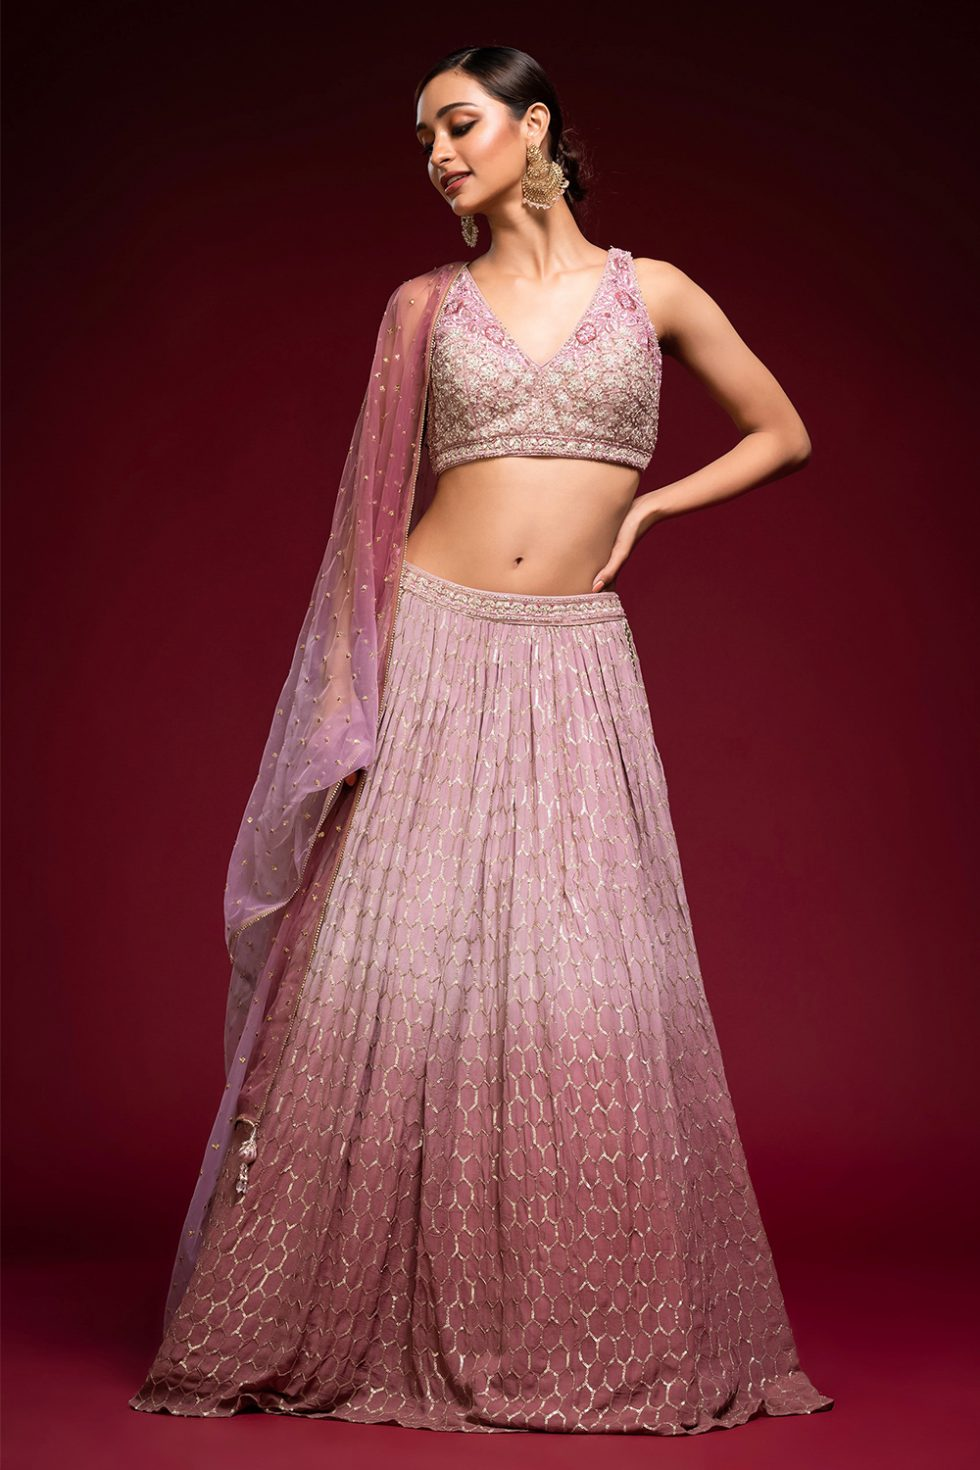 Ombré pink to pinkish purple geometric gold patterned lehenga set with an embroidered tie up blouse paired with a matching shaded dupatta and gold butis.